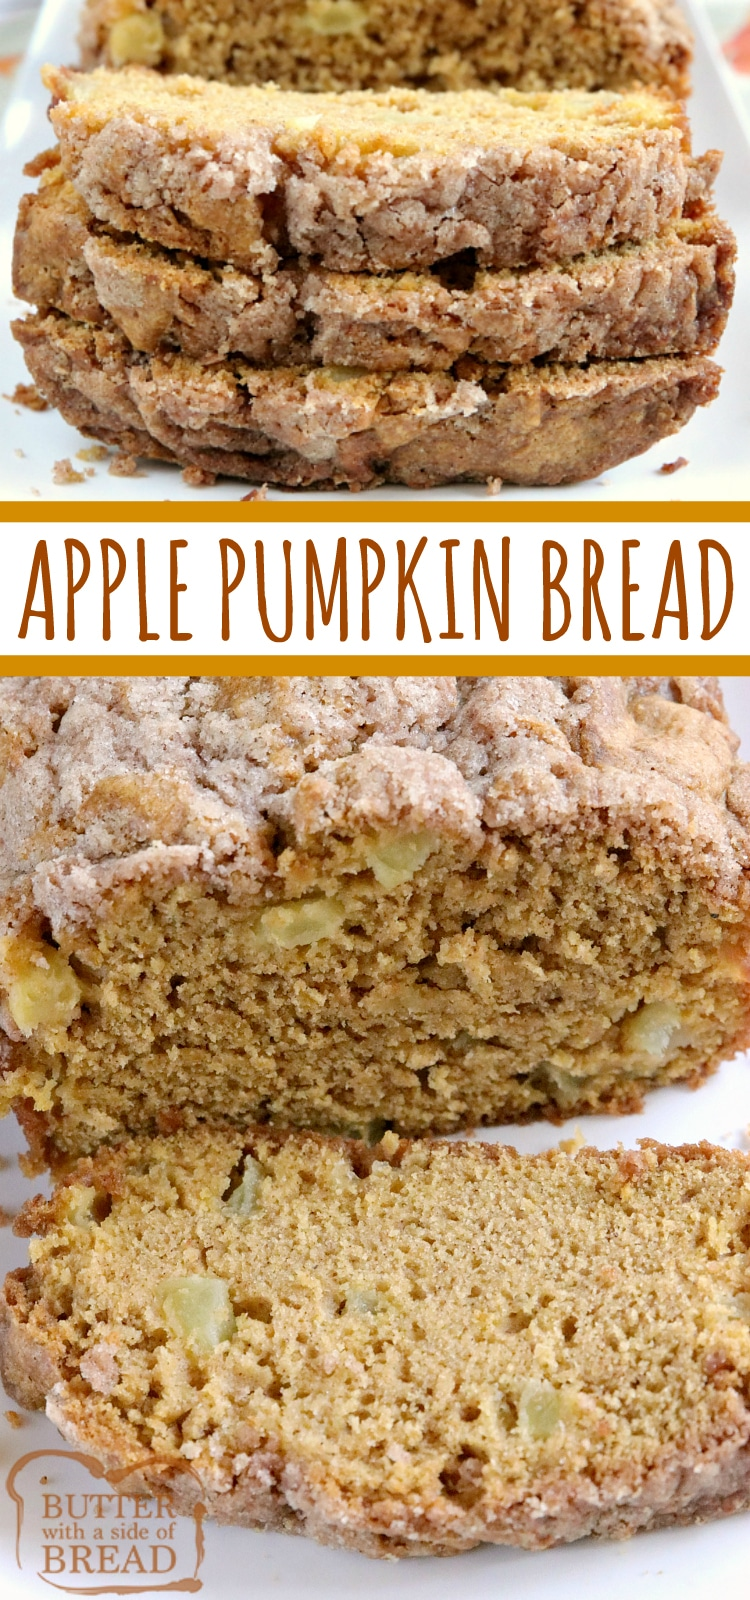 Apple Pumpkin Bread is a delicious quick bread recipe made with pumpkin and fresh apples! The crumbly cinnamon and sugar streusel on top adds the most amazing texture and flavor to this delicious pumpkin bread recipe.